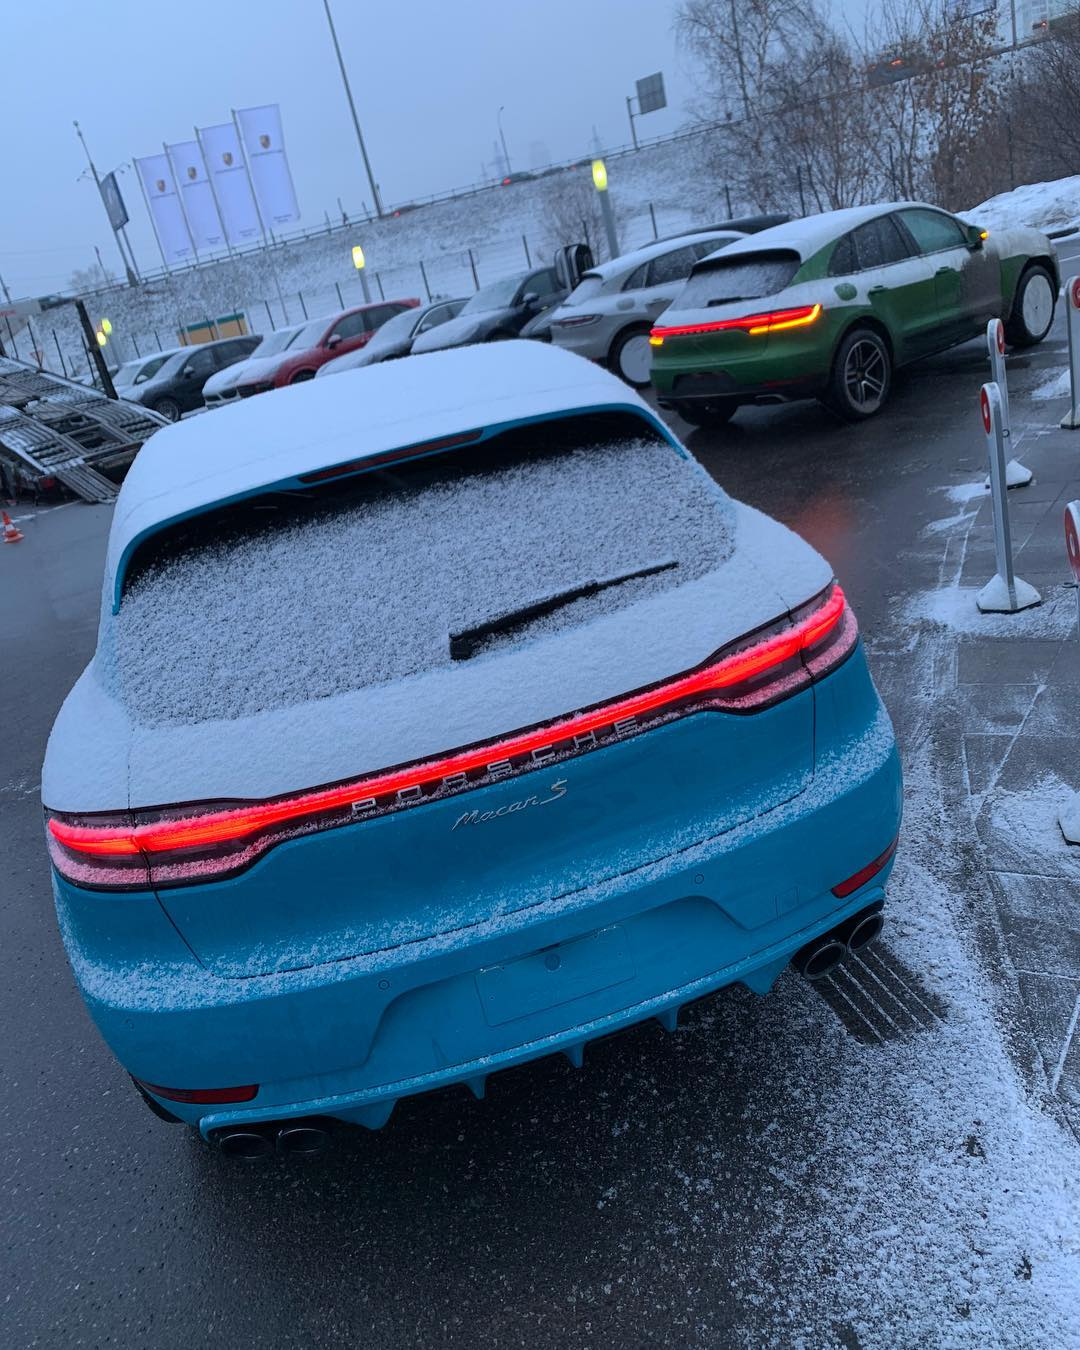 Miami Blue 2019 Porsche Macan S Arrives In Russia Looks Colorful